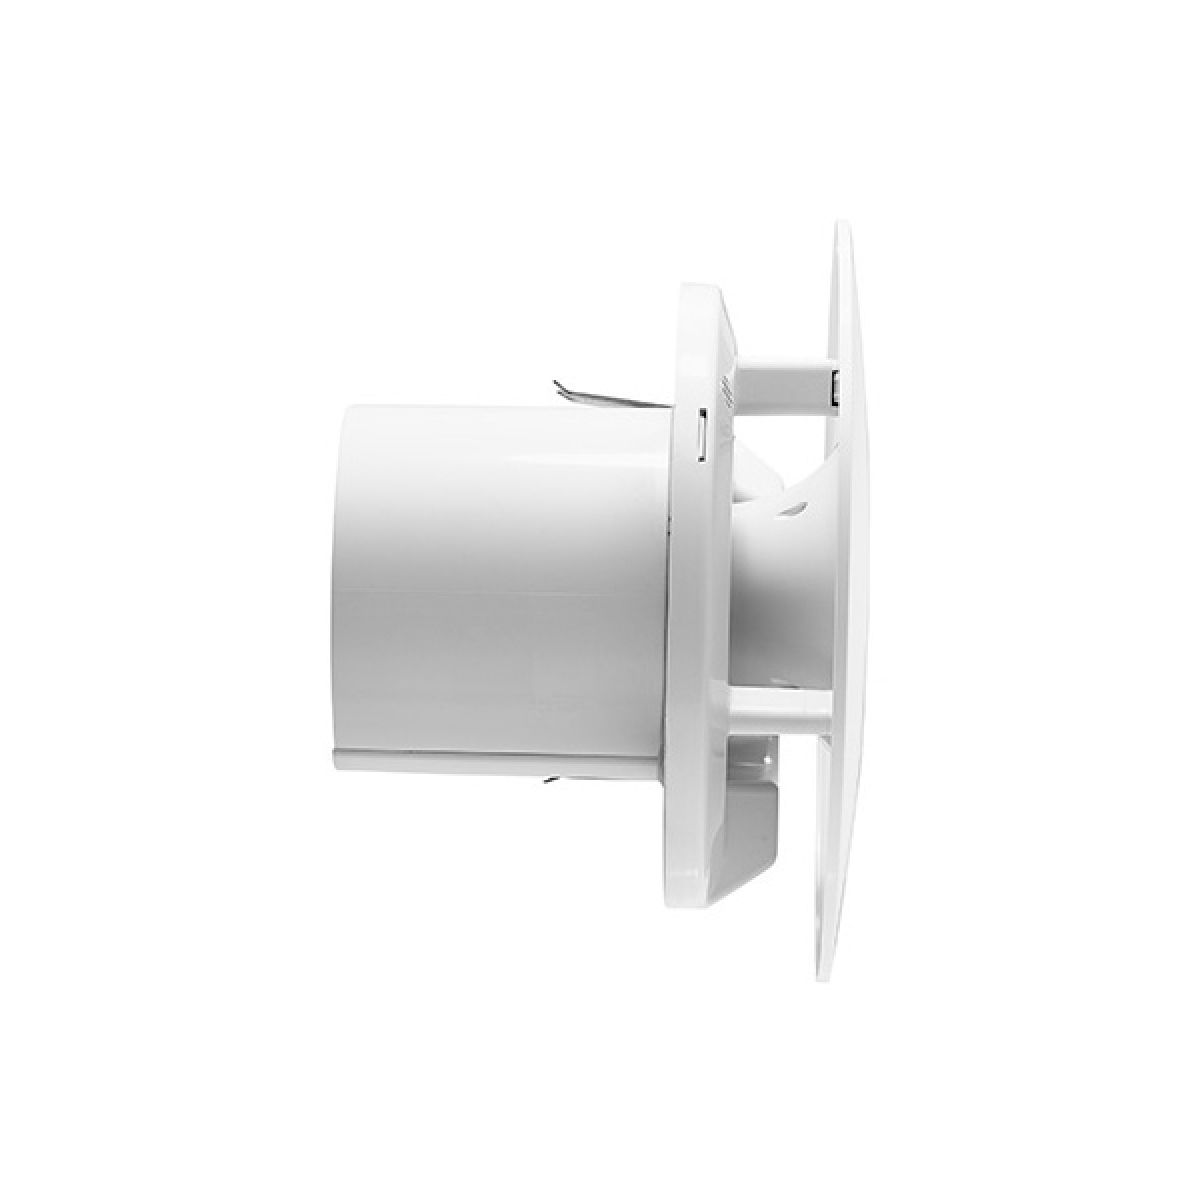 Xpelair Simply Silent Contour Round Bathroom Fan with Humidistat 100mm - Side